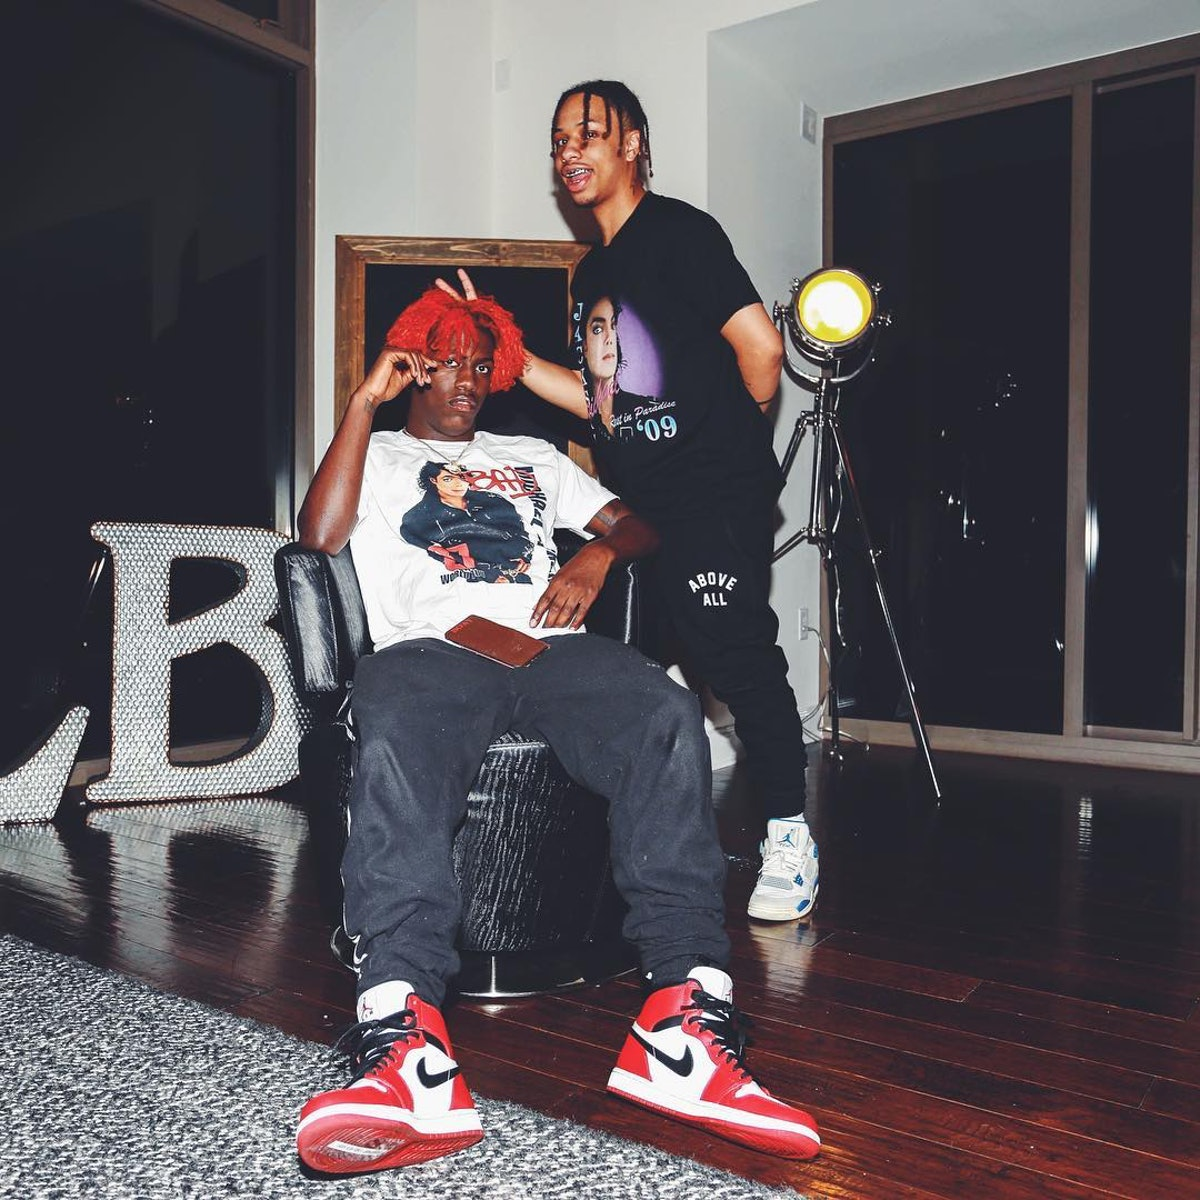 Burberry Perry and Lil Yachty